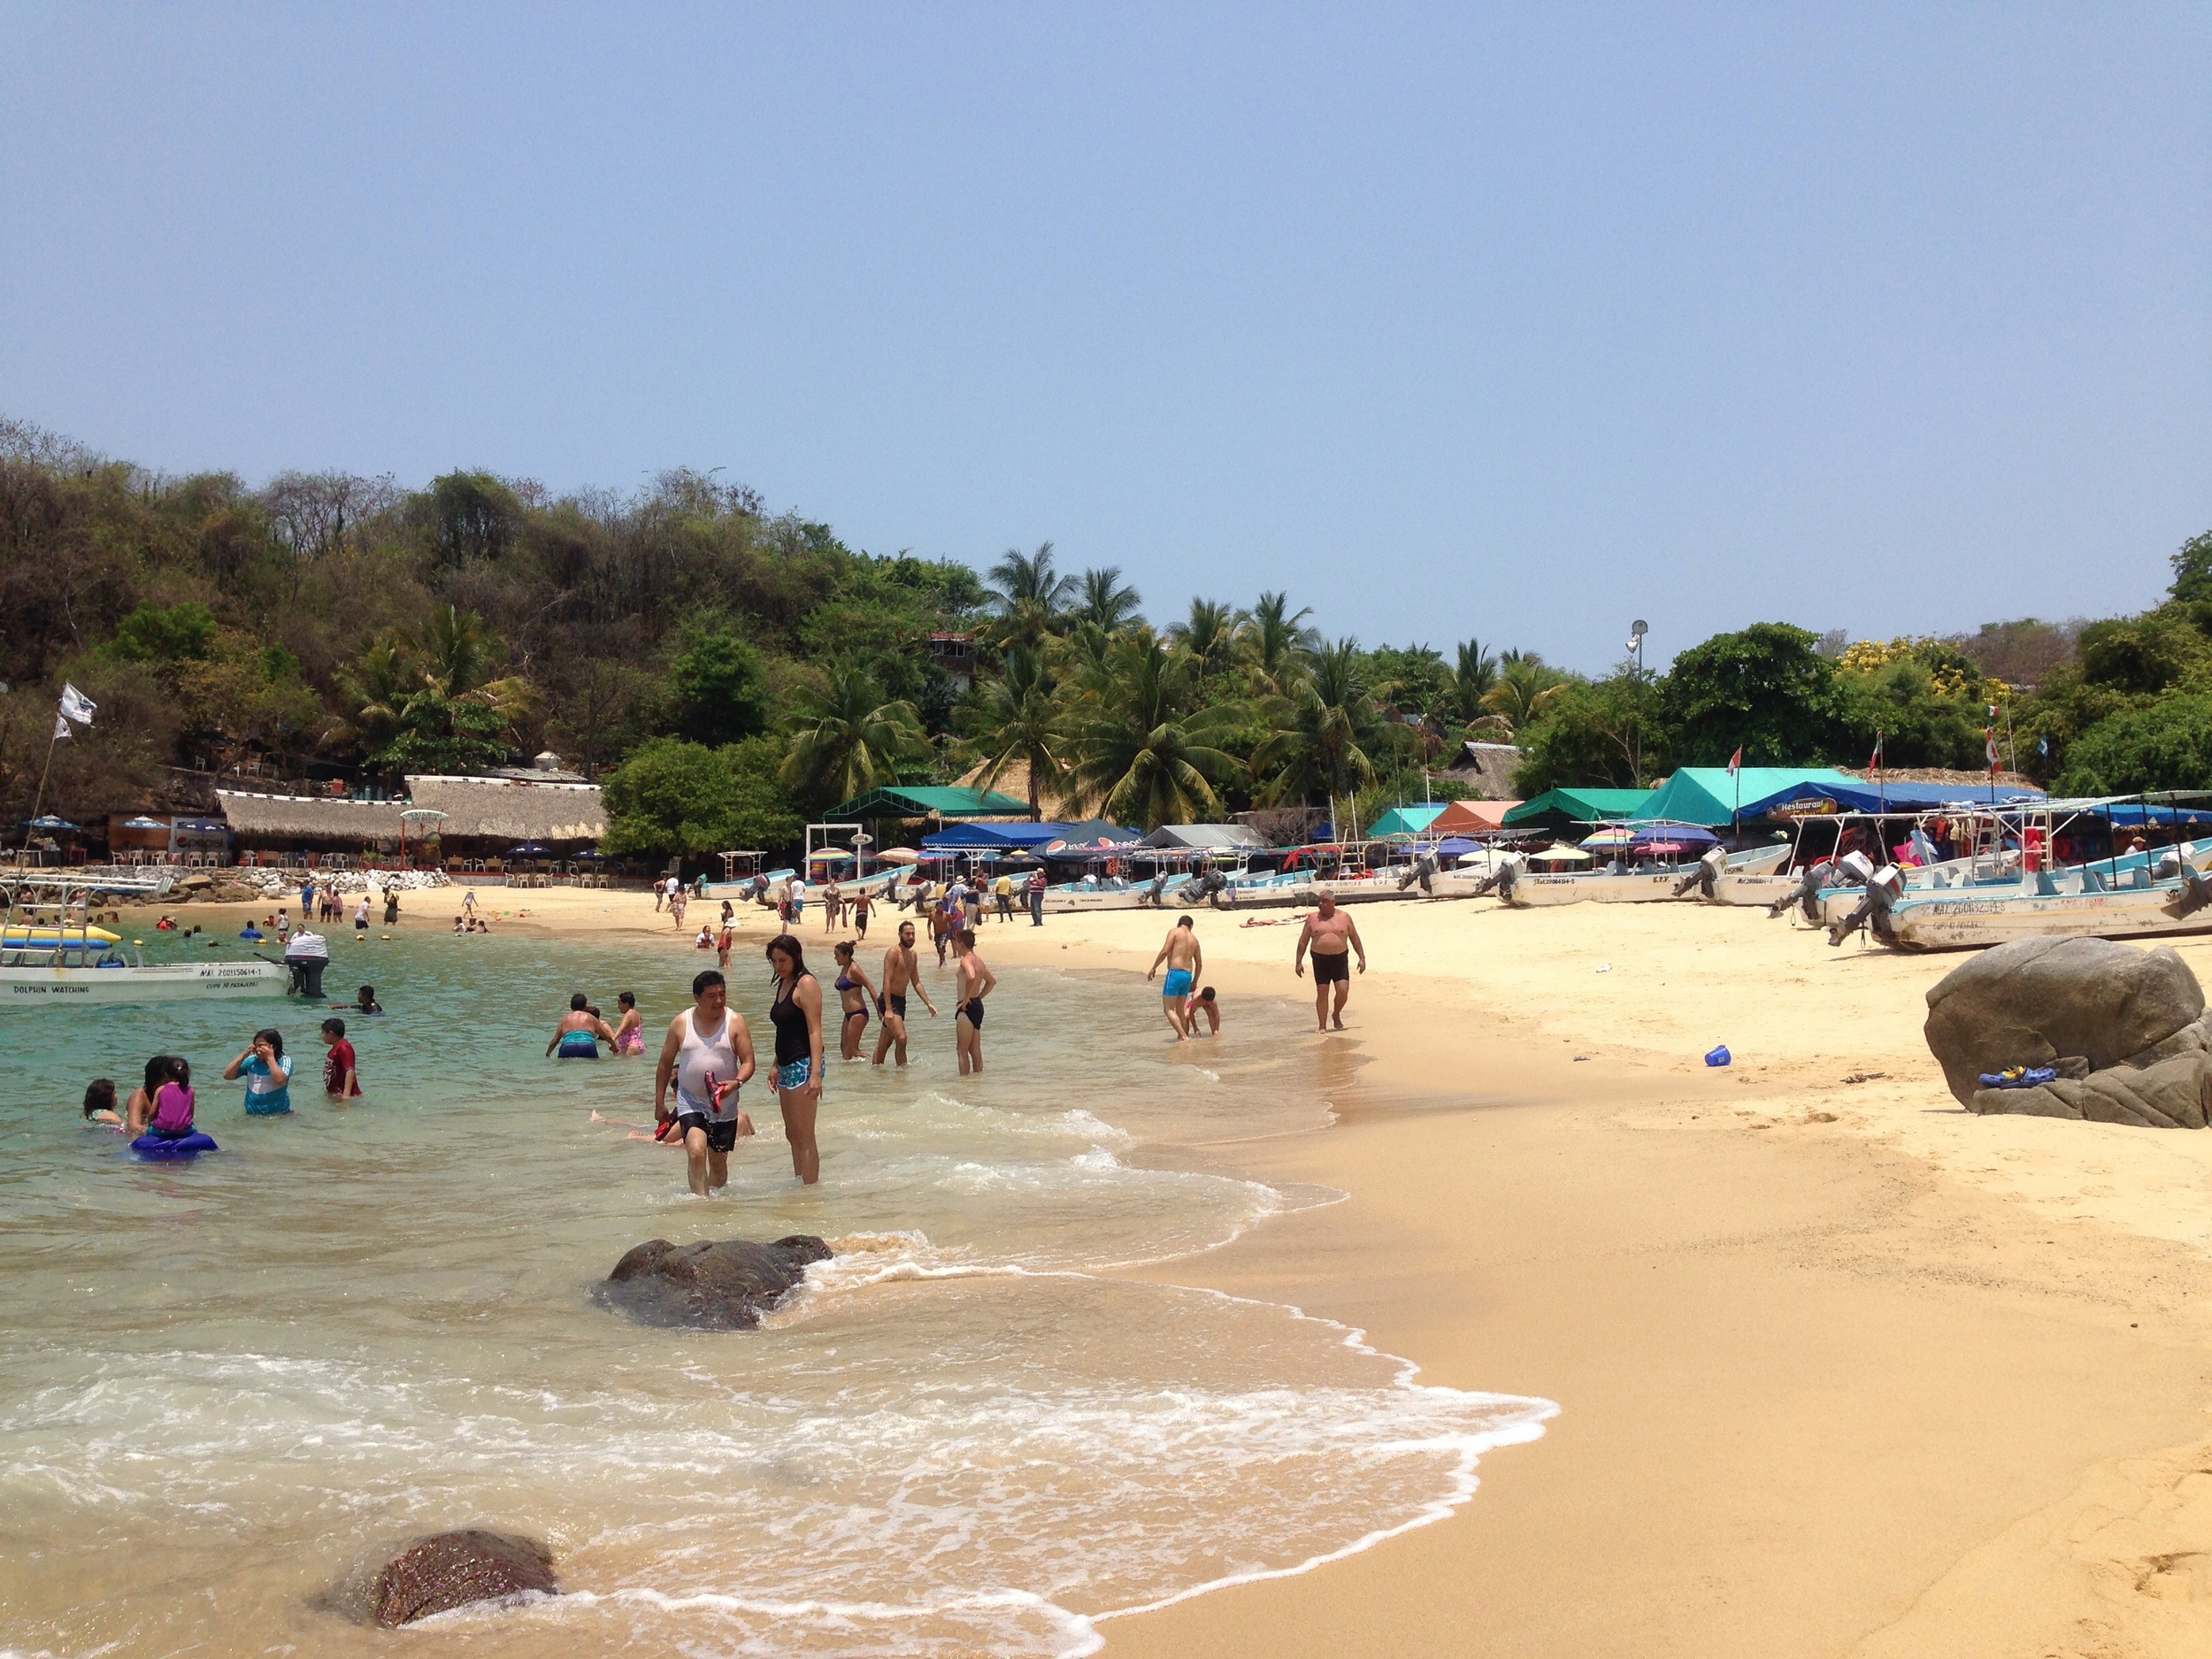 Crowded beach. Not used to it